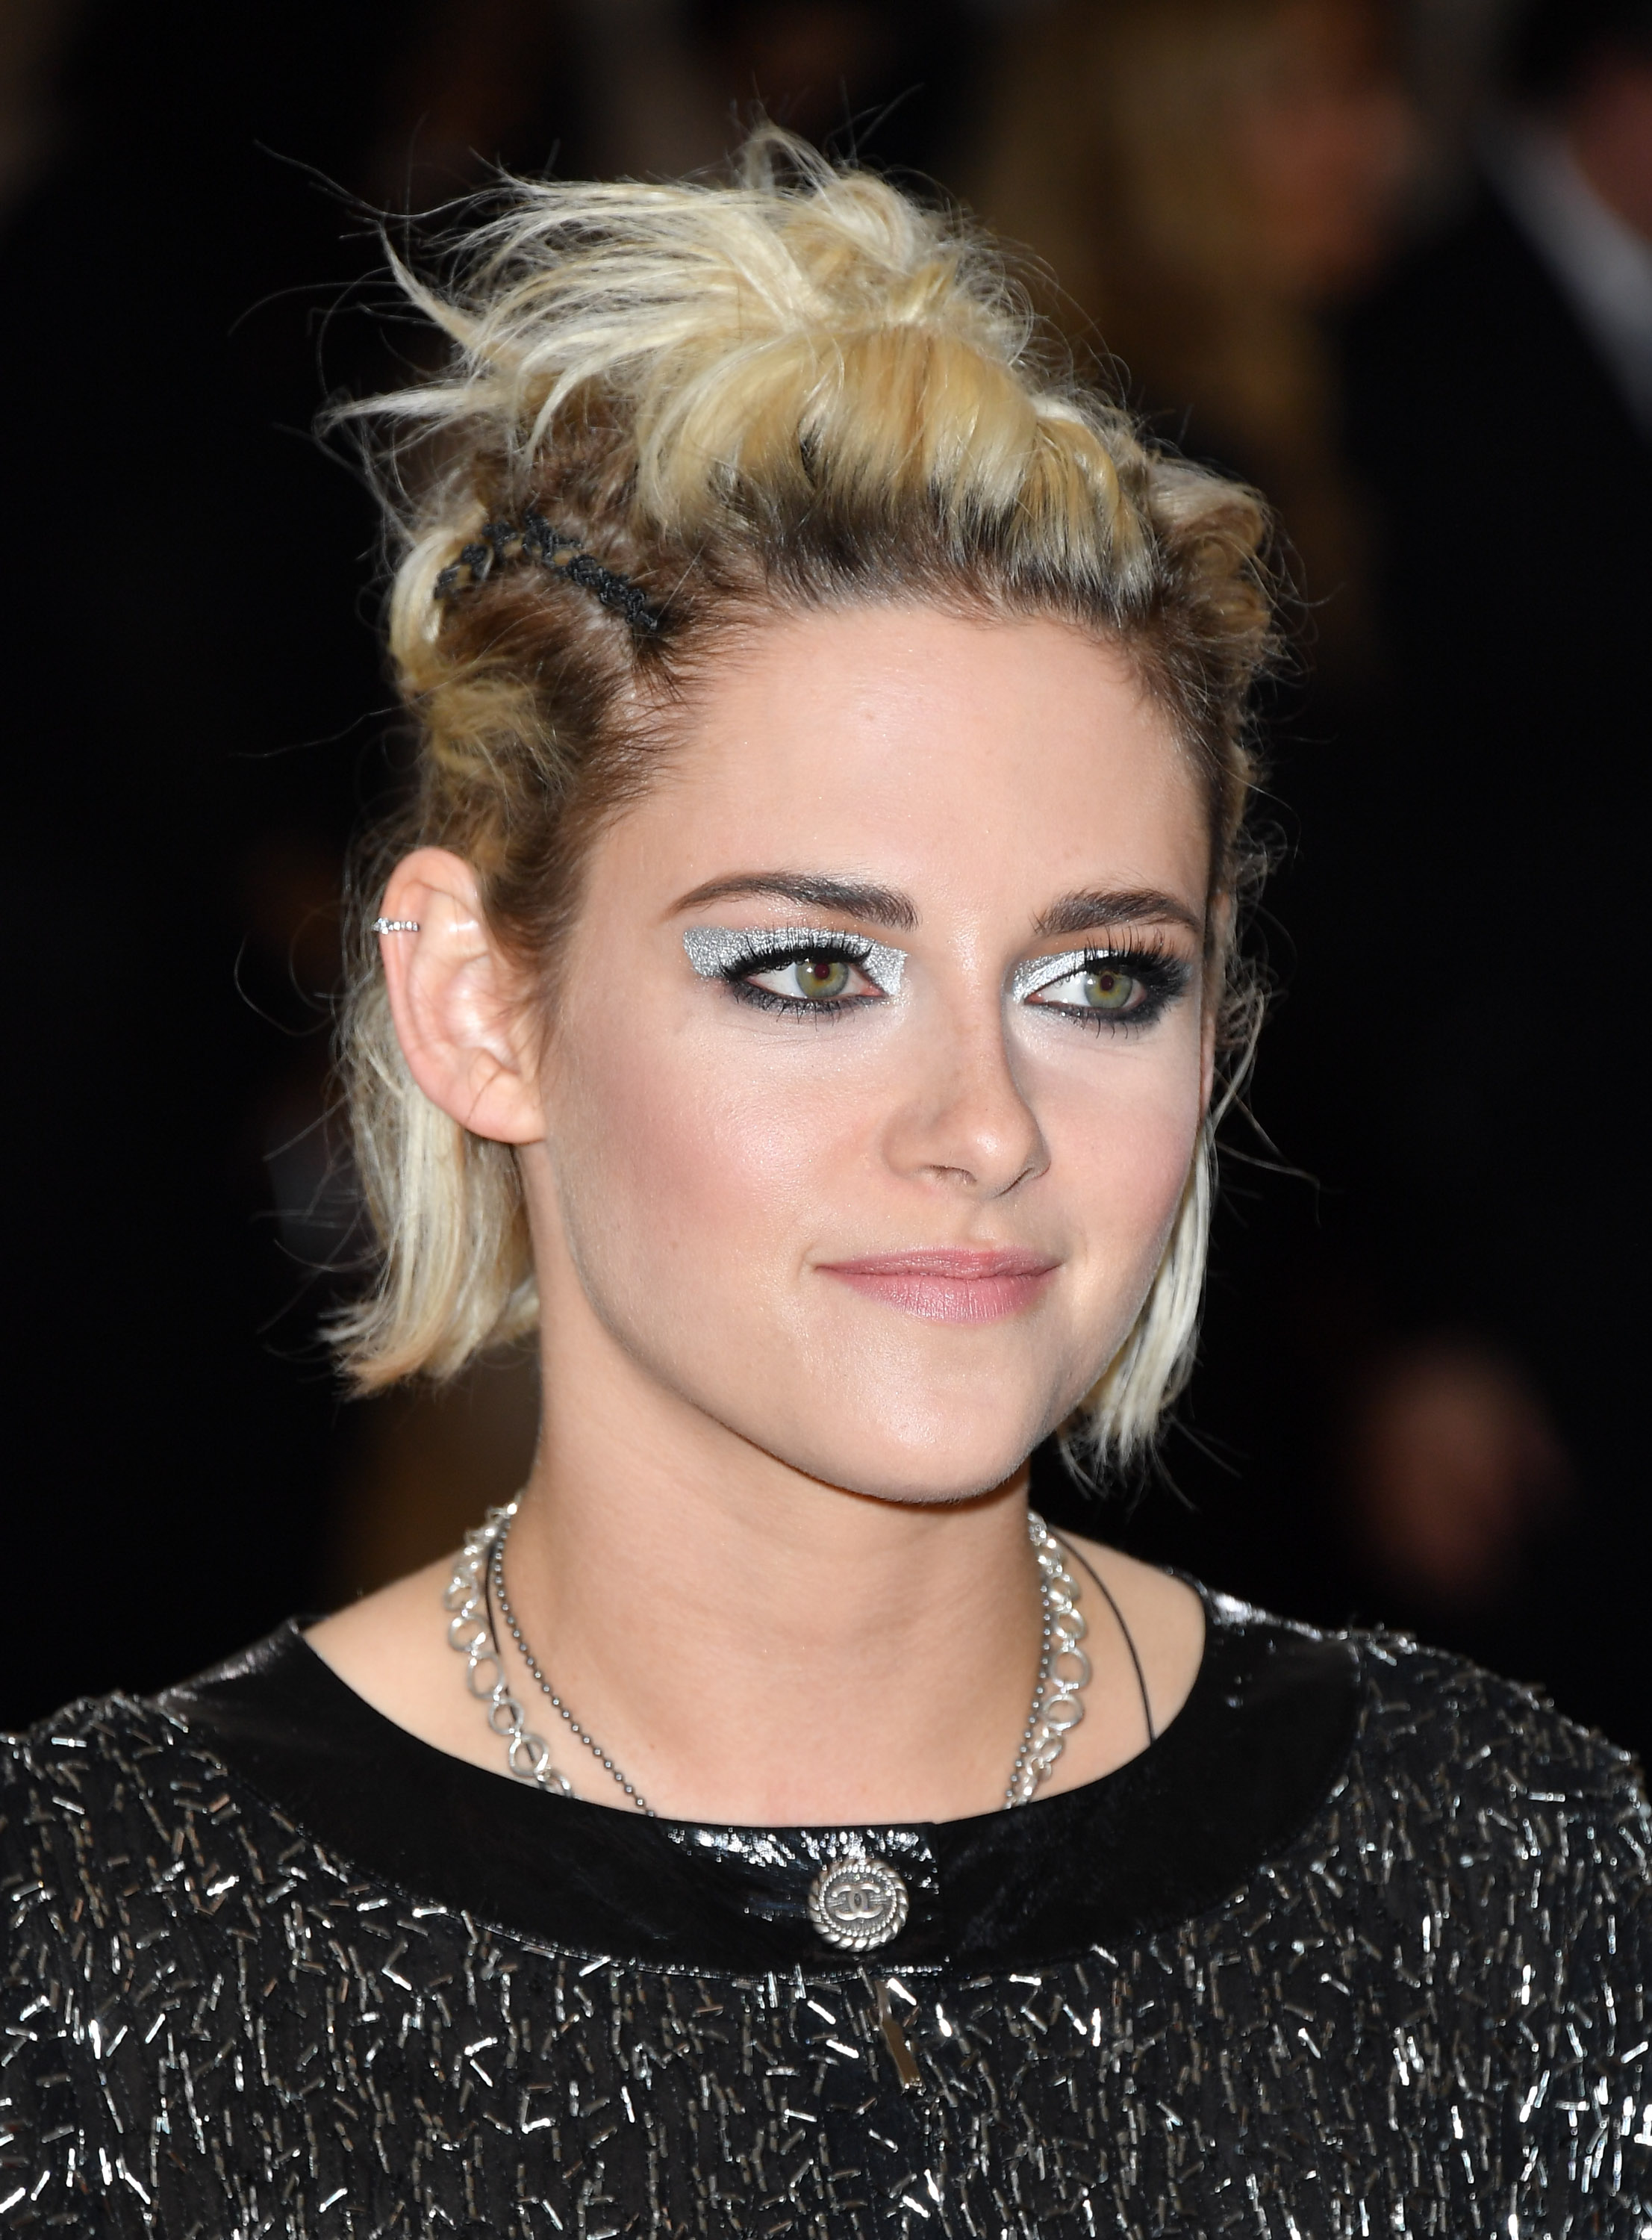 Kristen stewart coupe de cheveux 2016 for Coupe de cheveux stars 2016